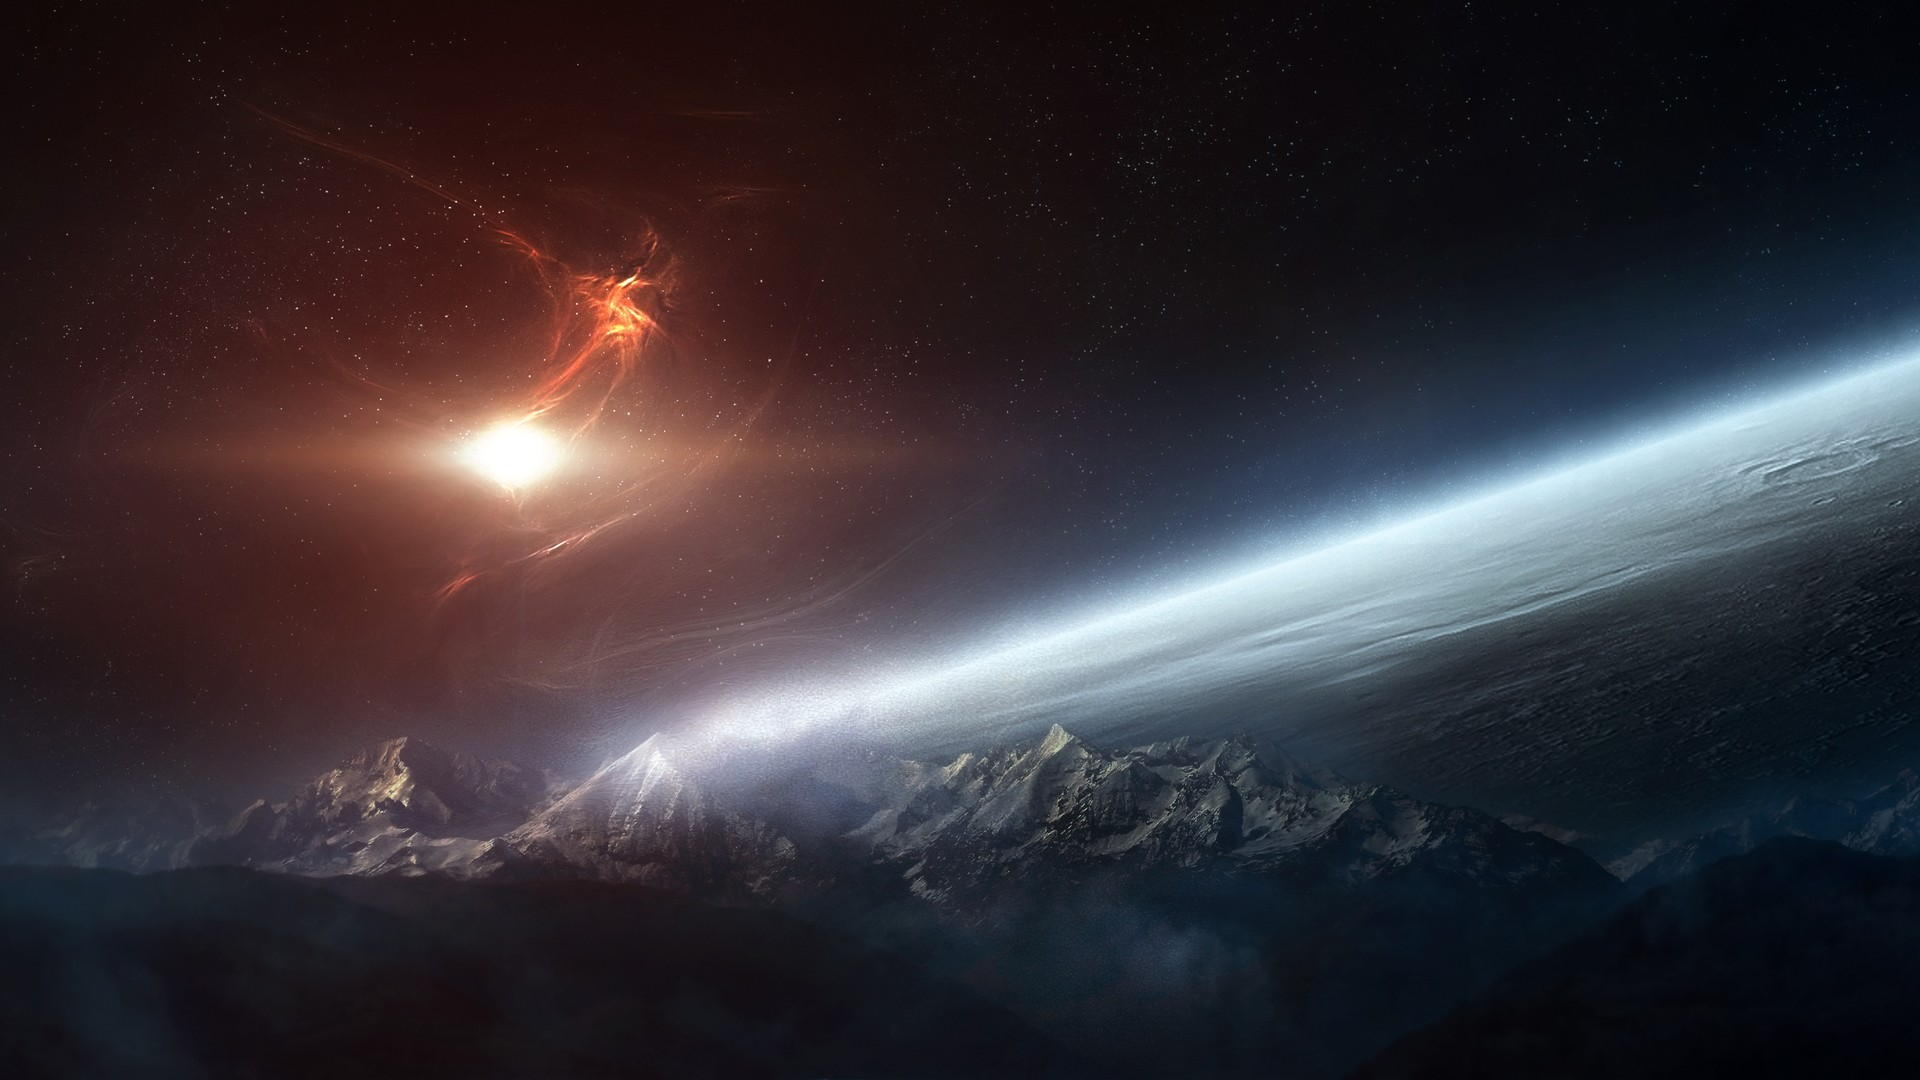 Full HD Space Wallpapers 1920x1080